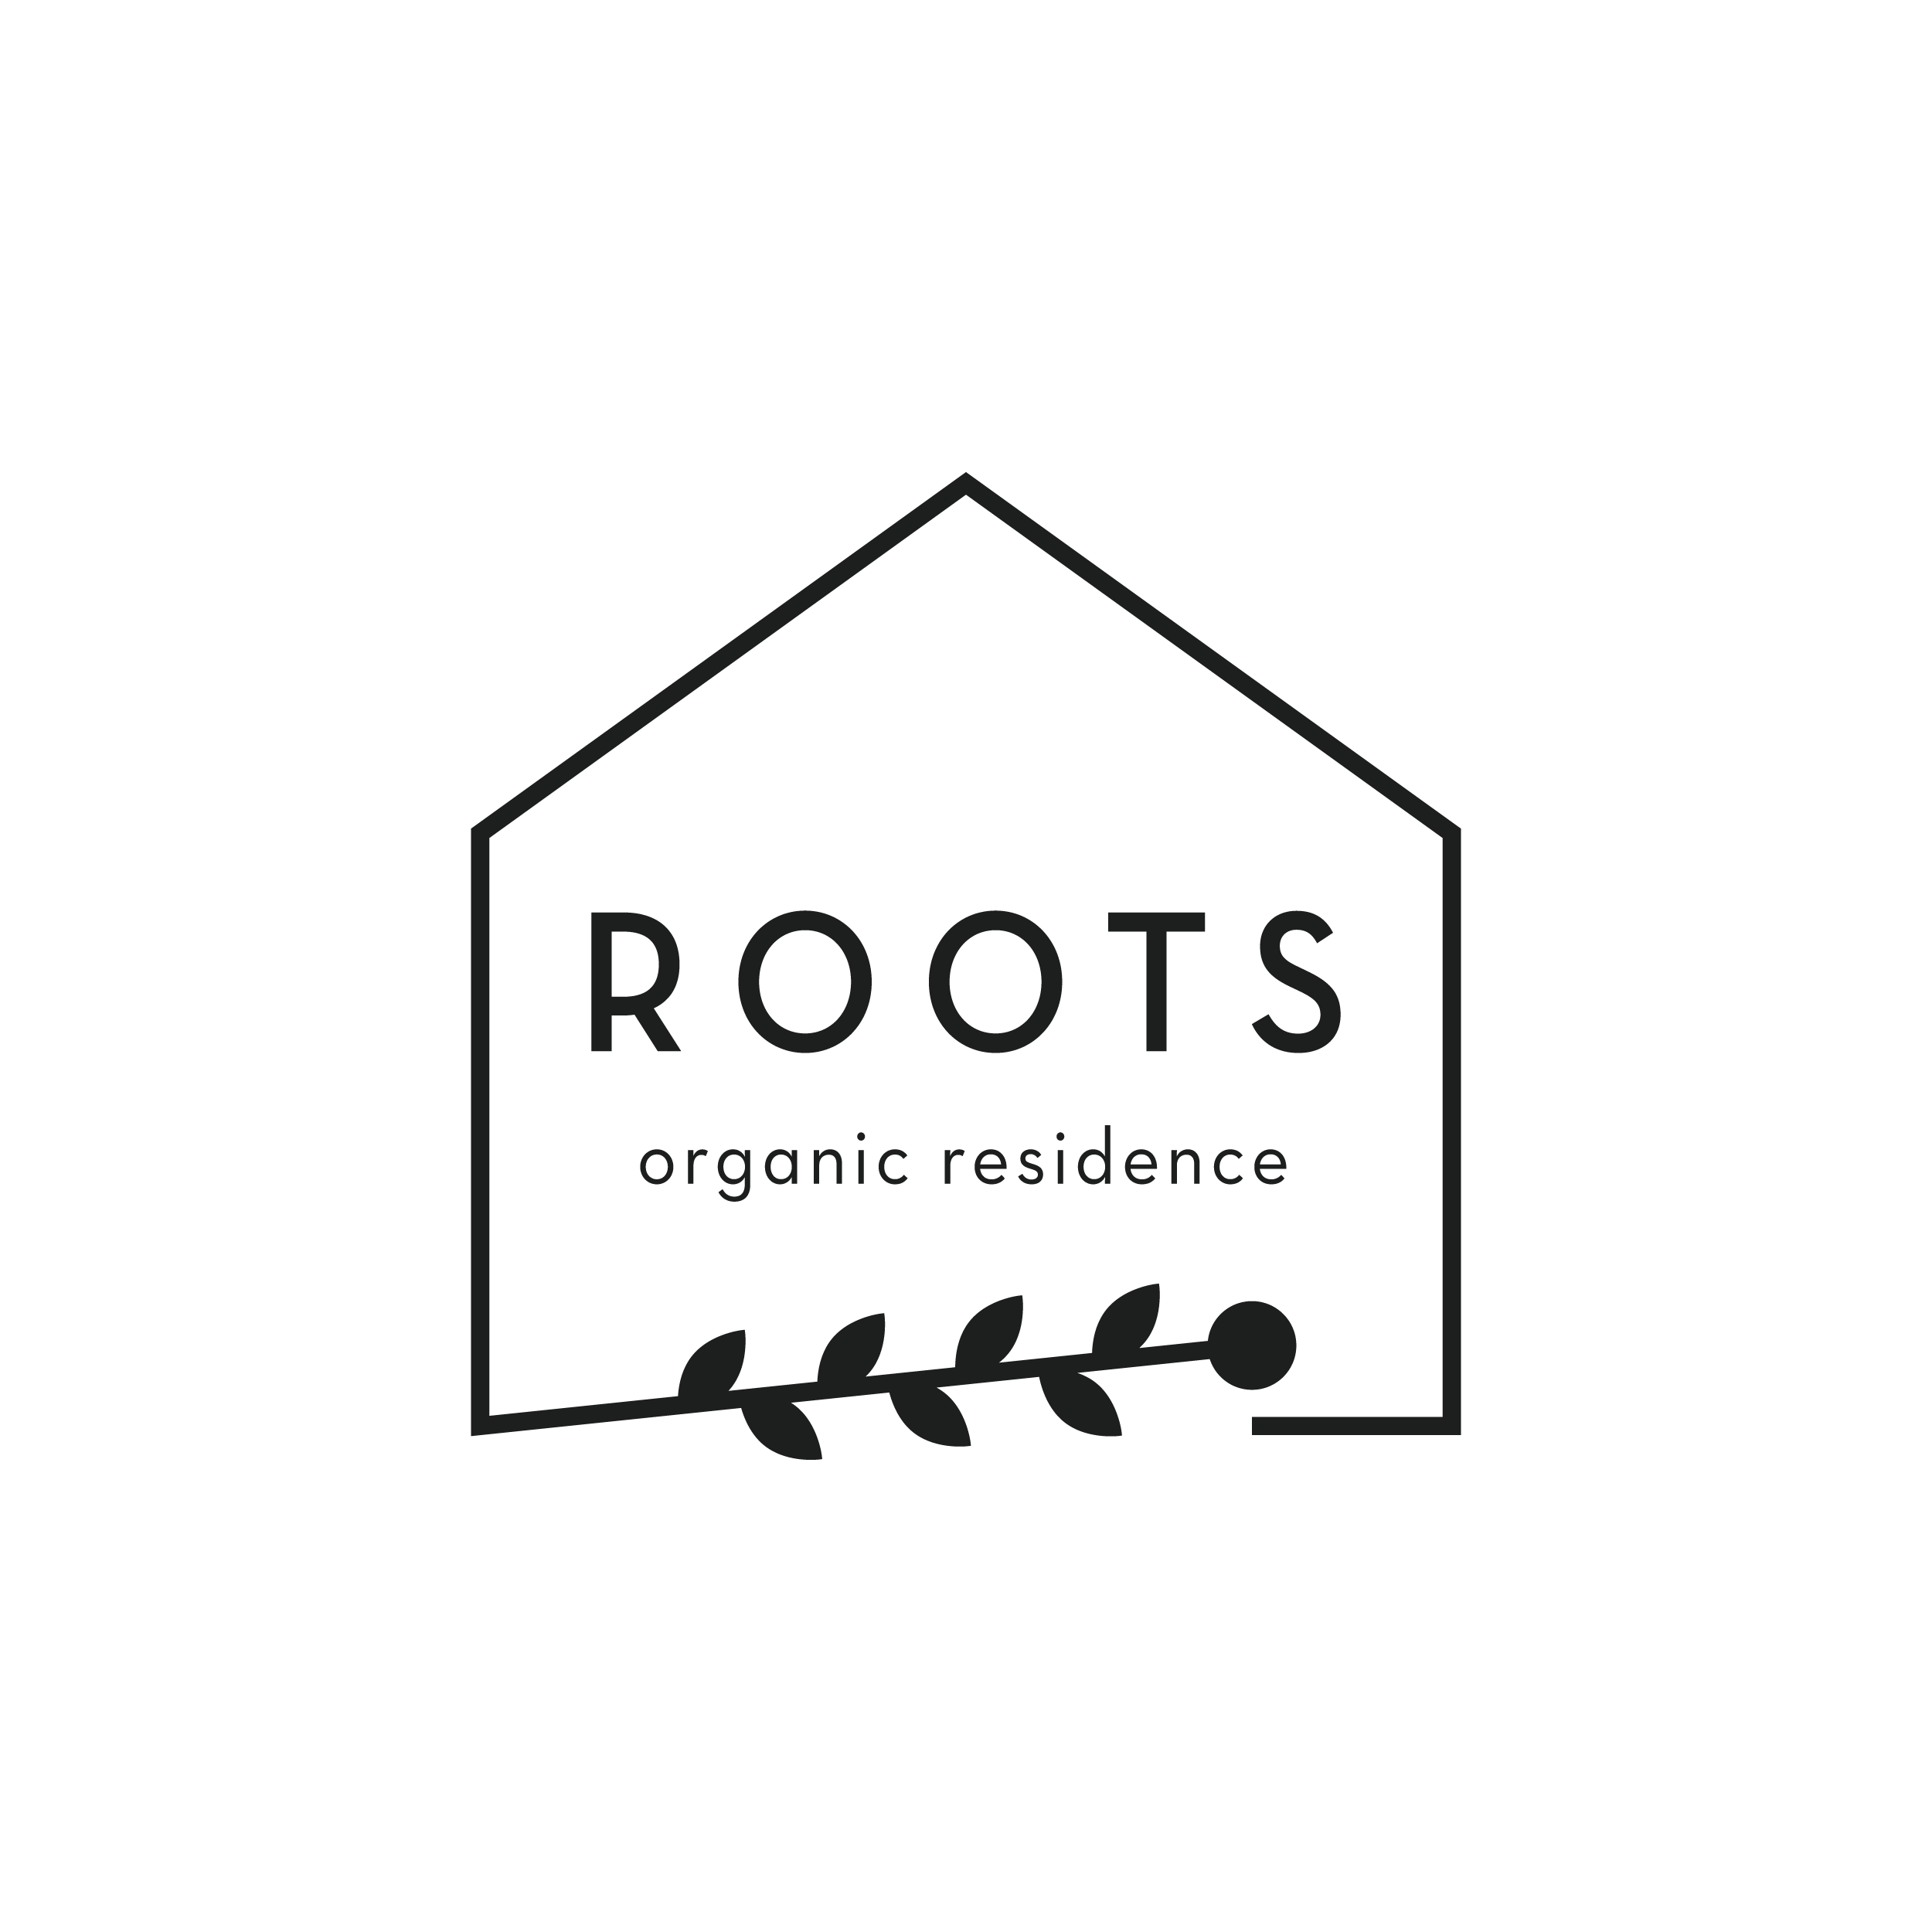 ROOTS_organic residence.png